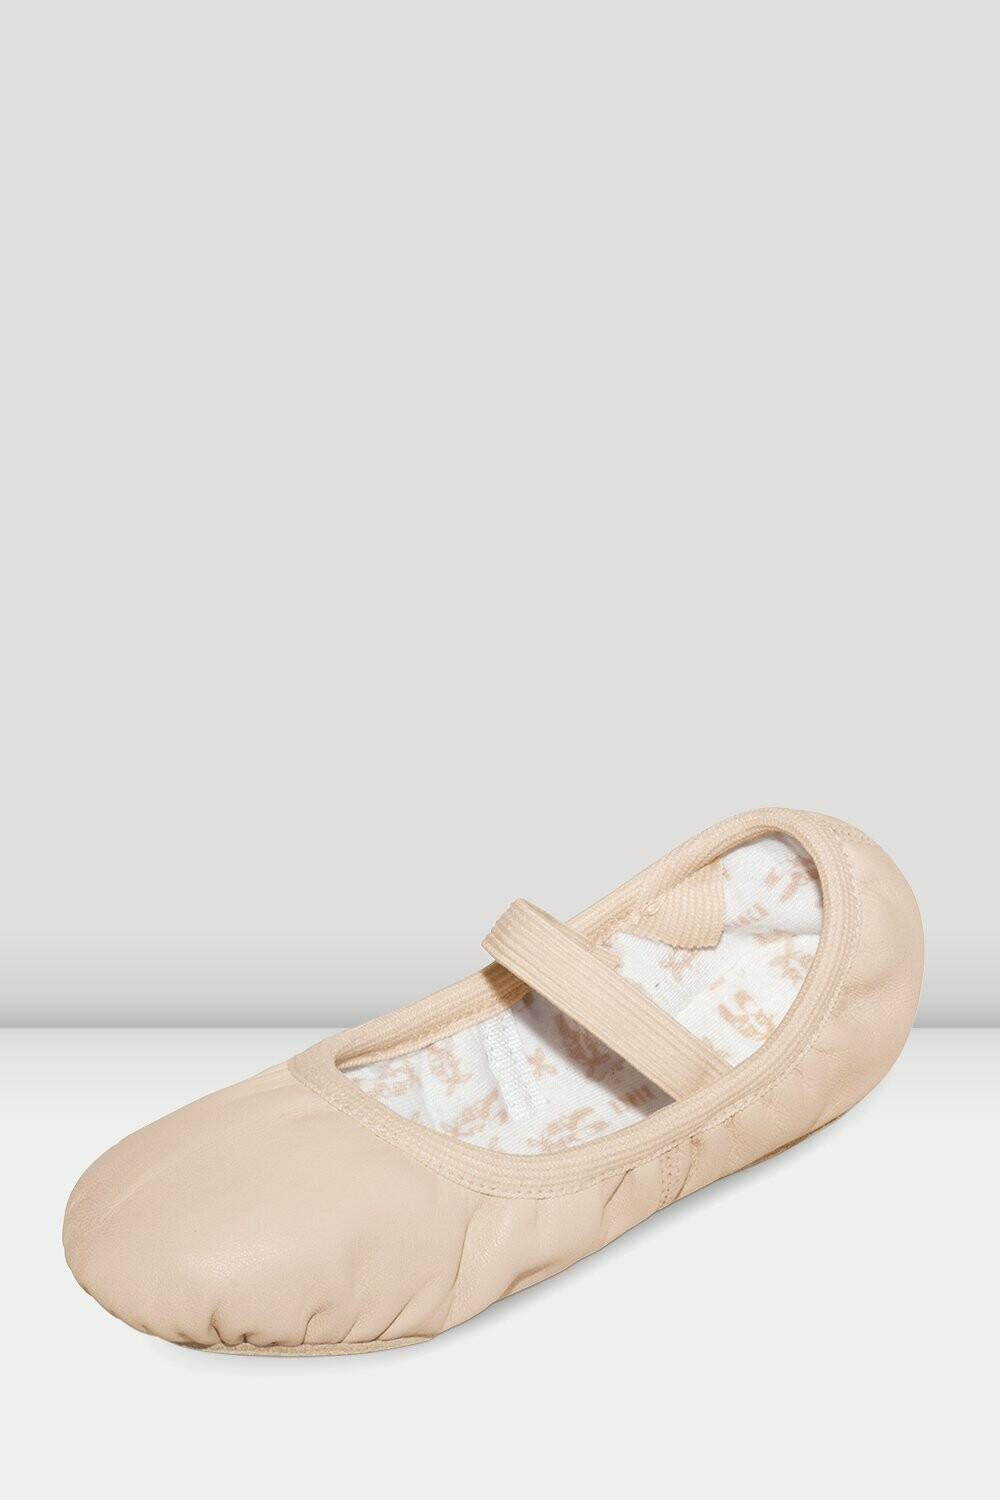 BL S0249G GISELLE FULL SOLE LEATHER BALLET SHOE